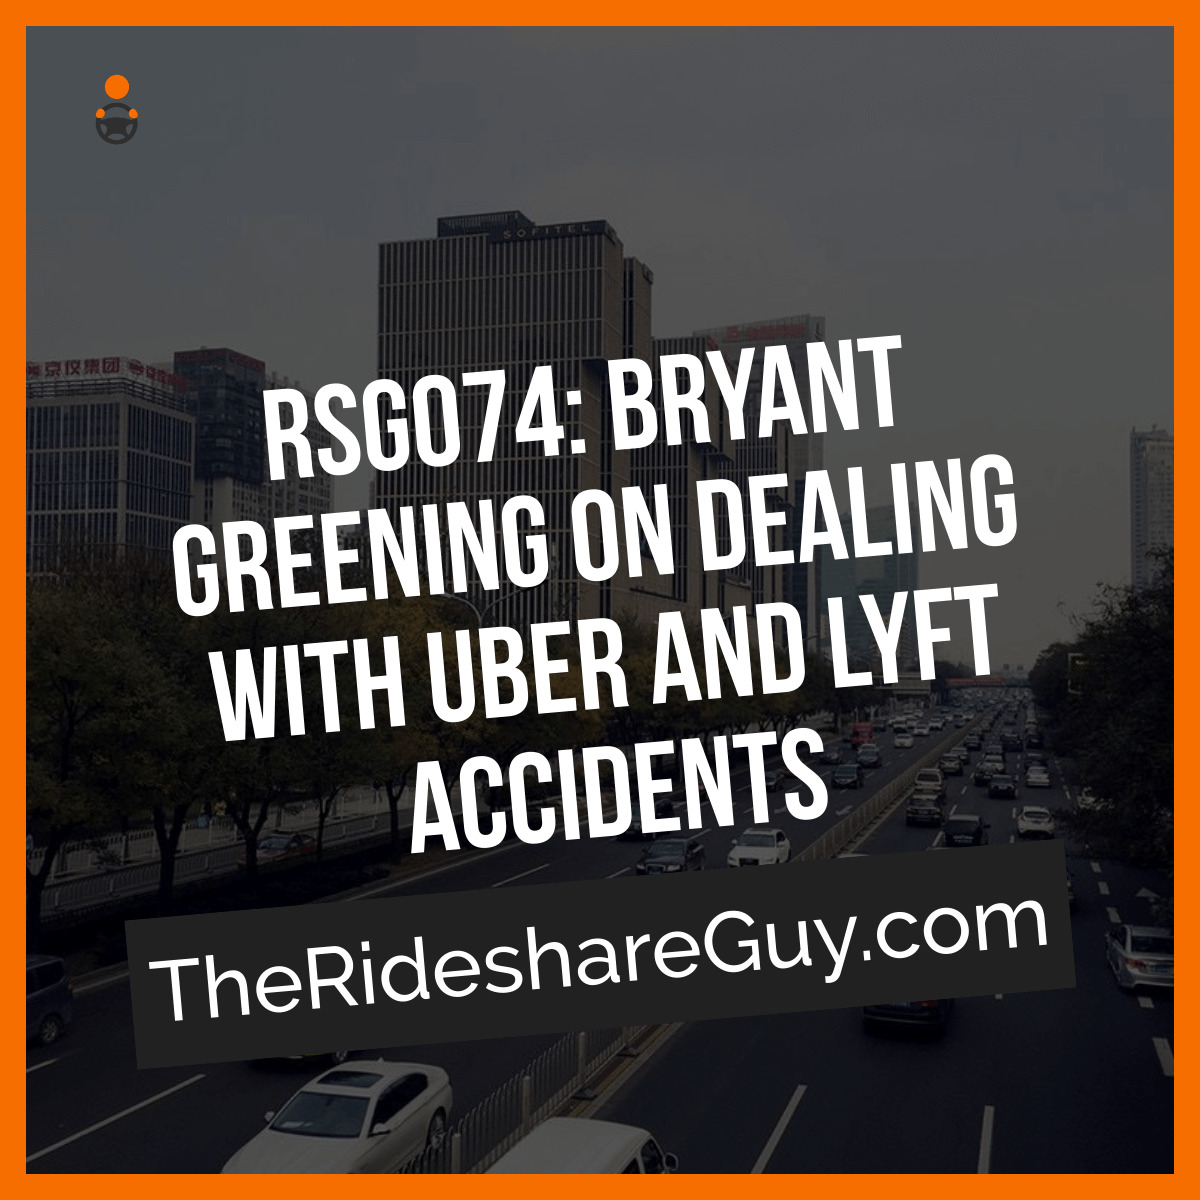 RSG074: Bryant Greening on Dealing with Uber and Lyft Accidents